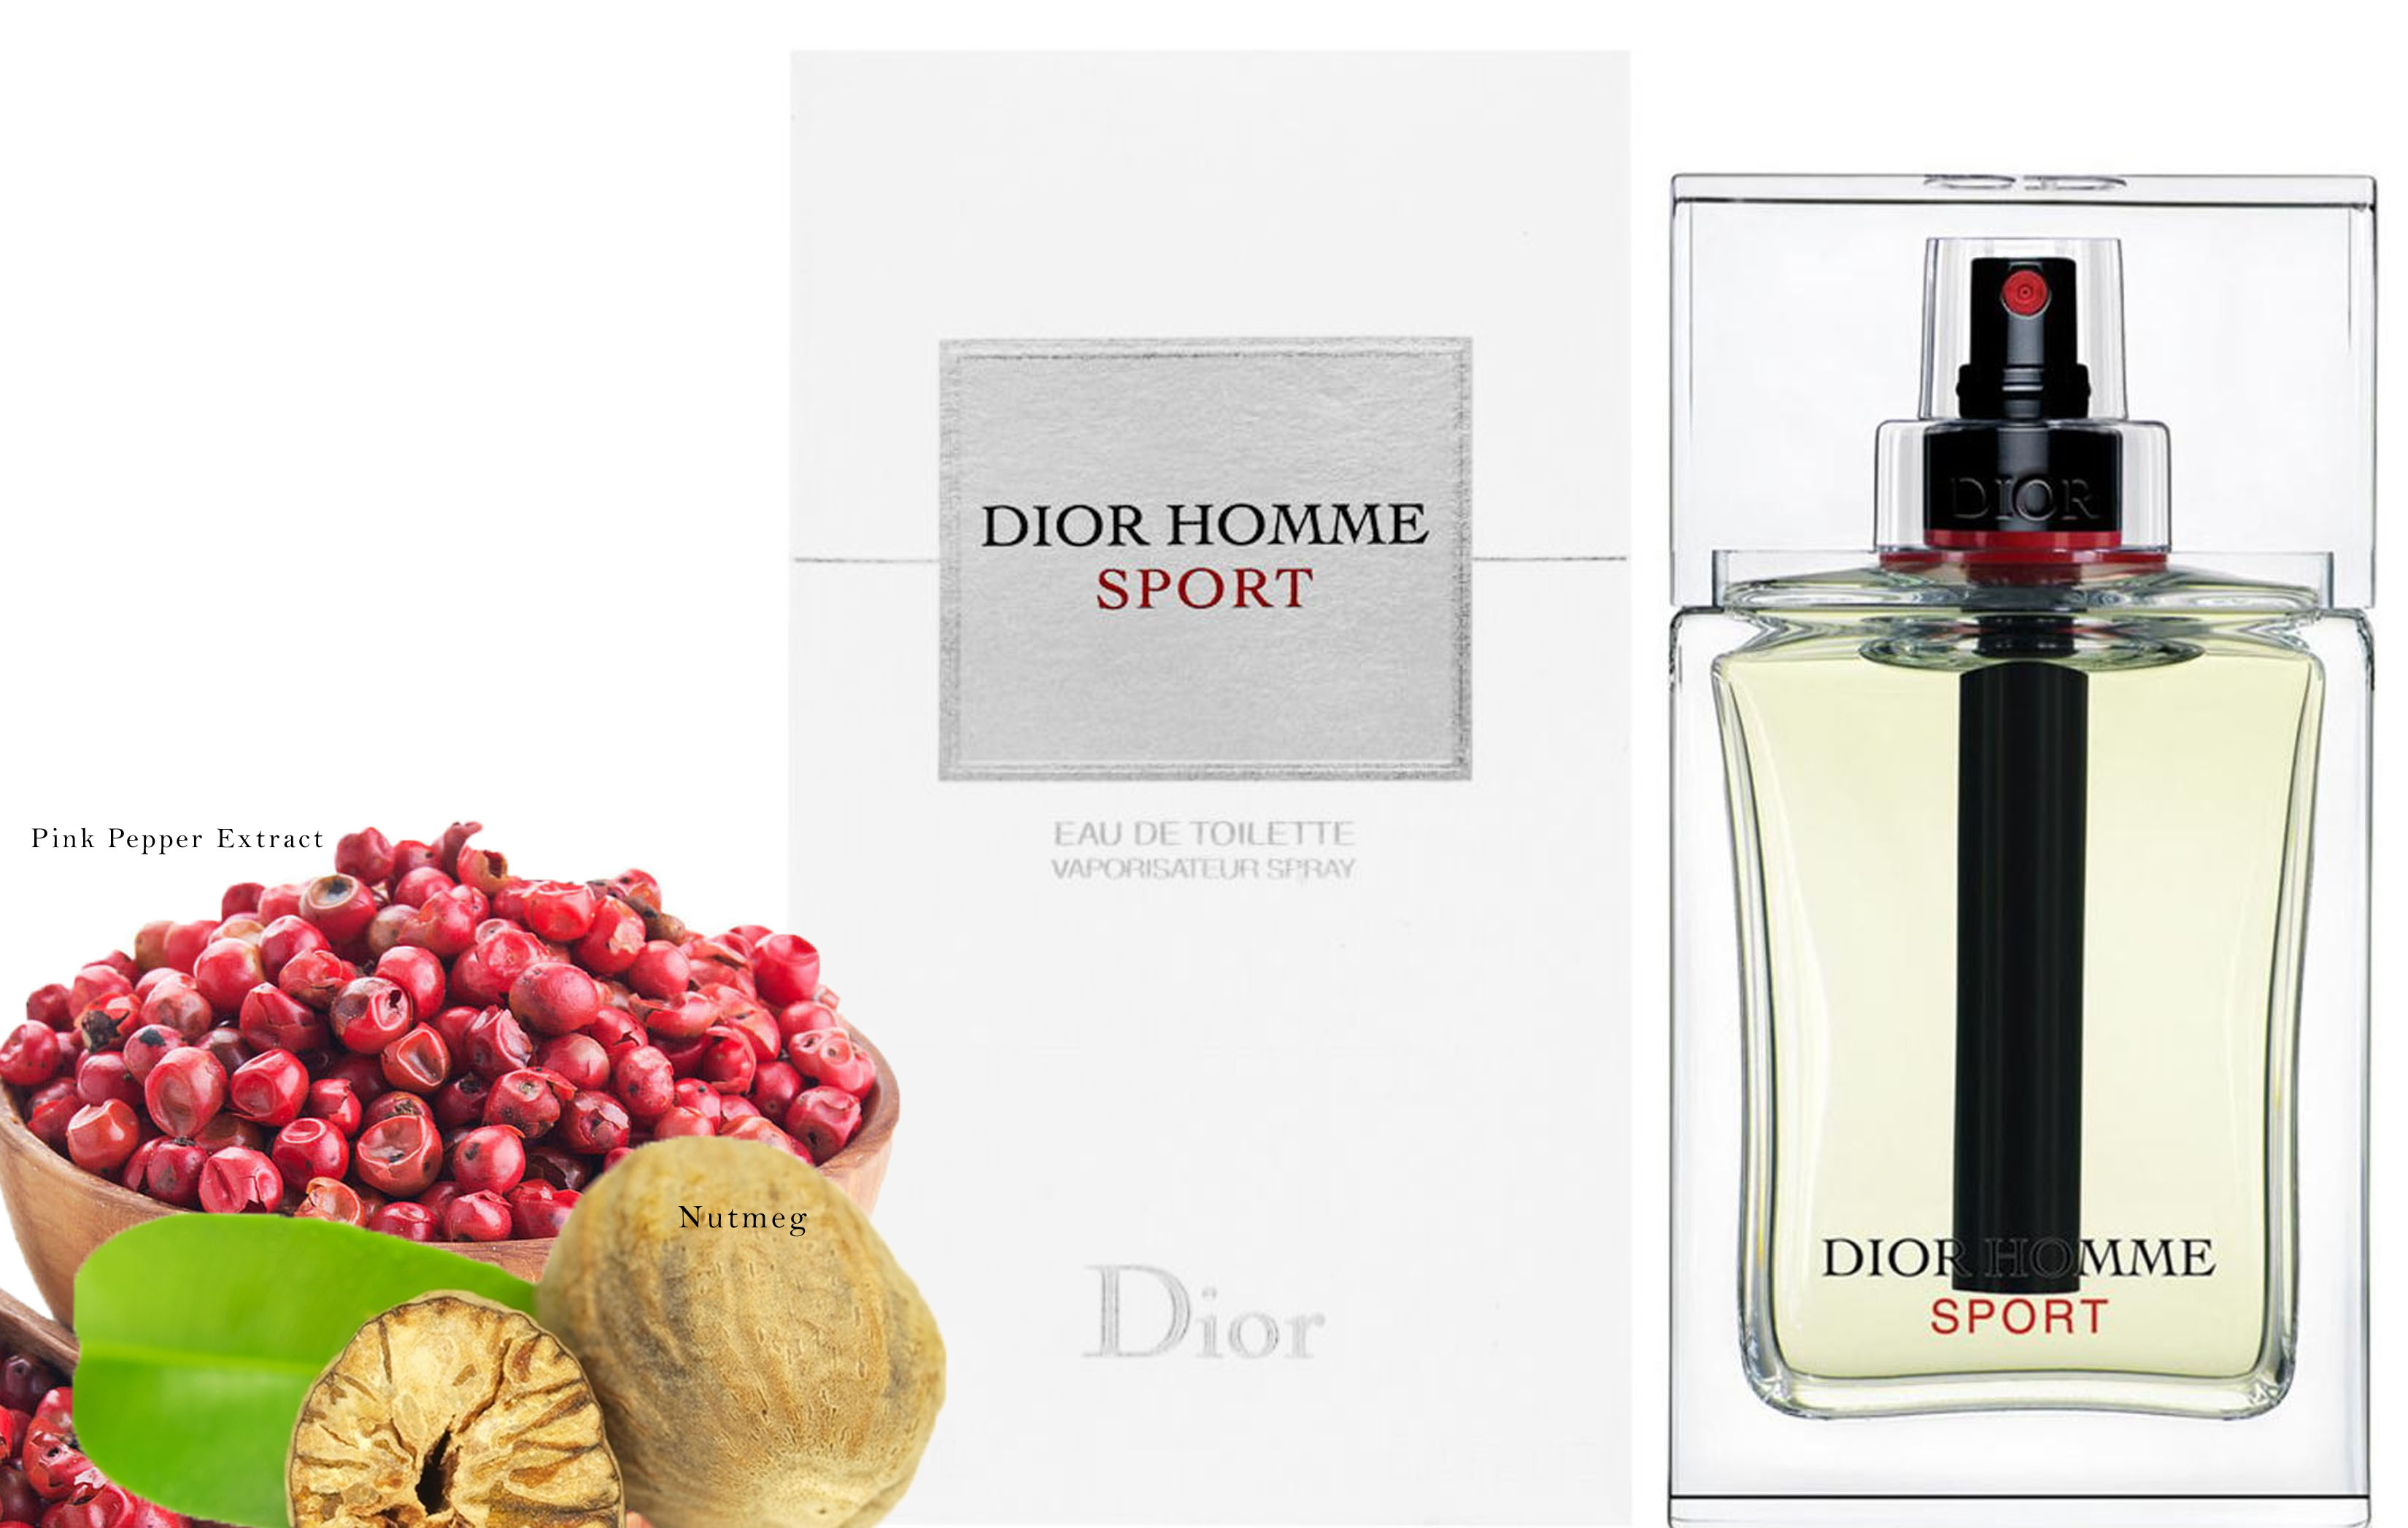 2017 05 dolce gabbana intense perfume review - Dior Homme Sport For Father S Day